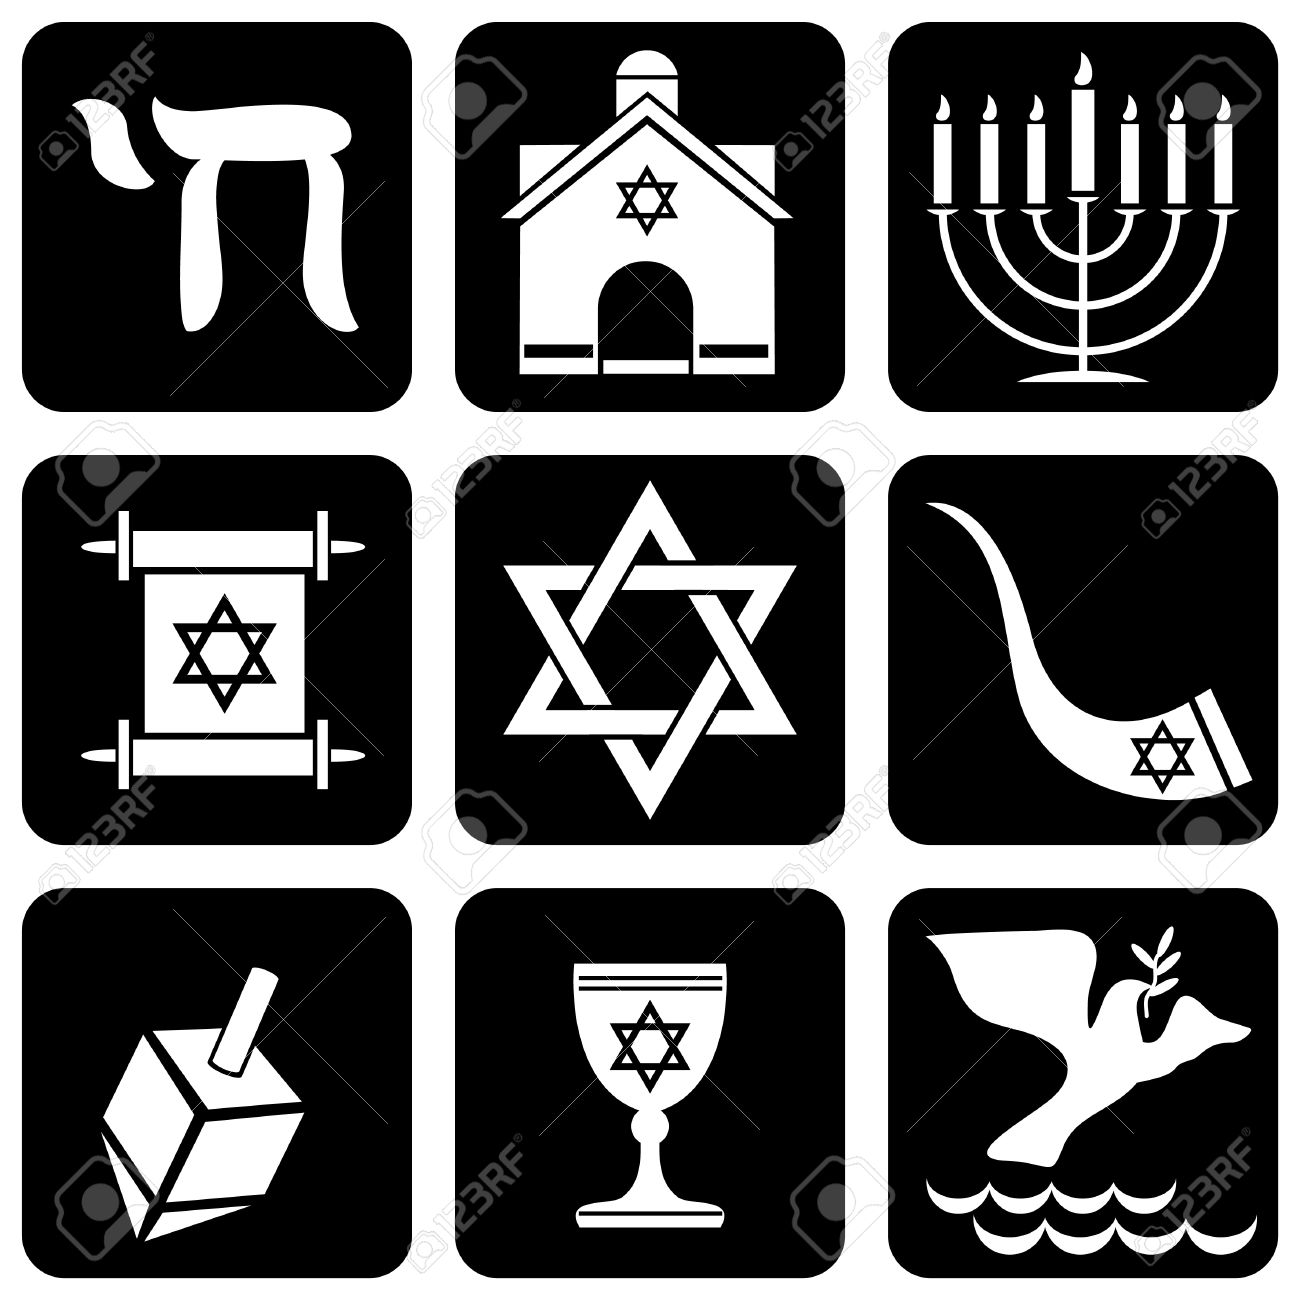 Jewish Relious Symbols Clipart Library